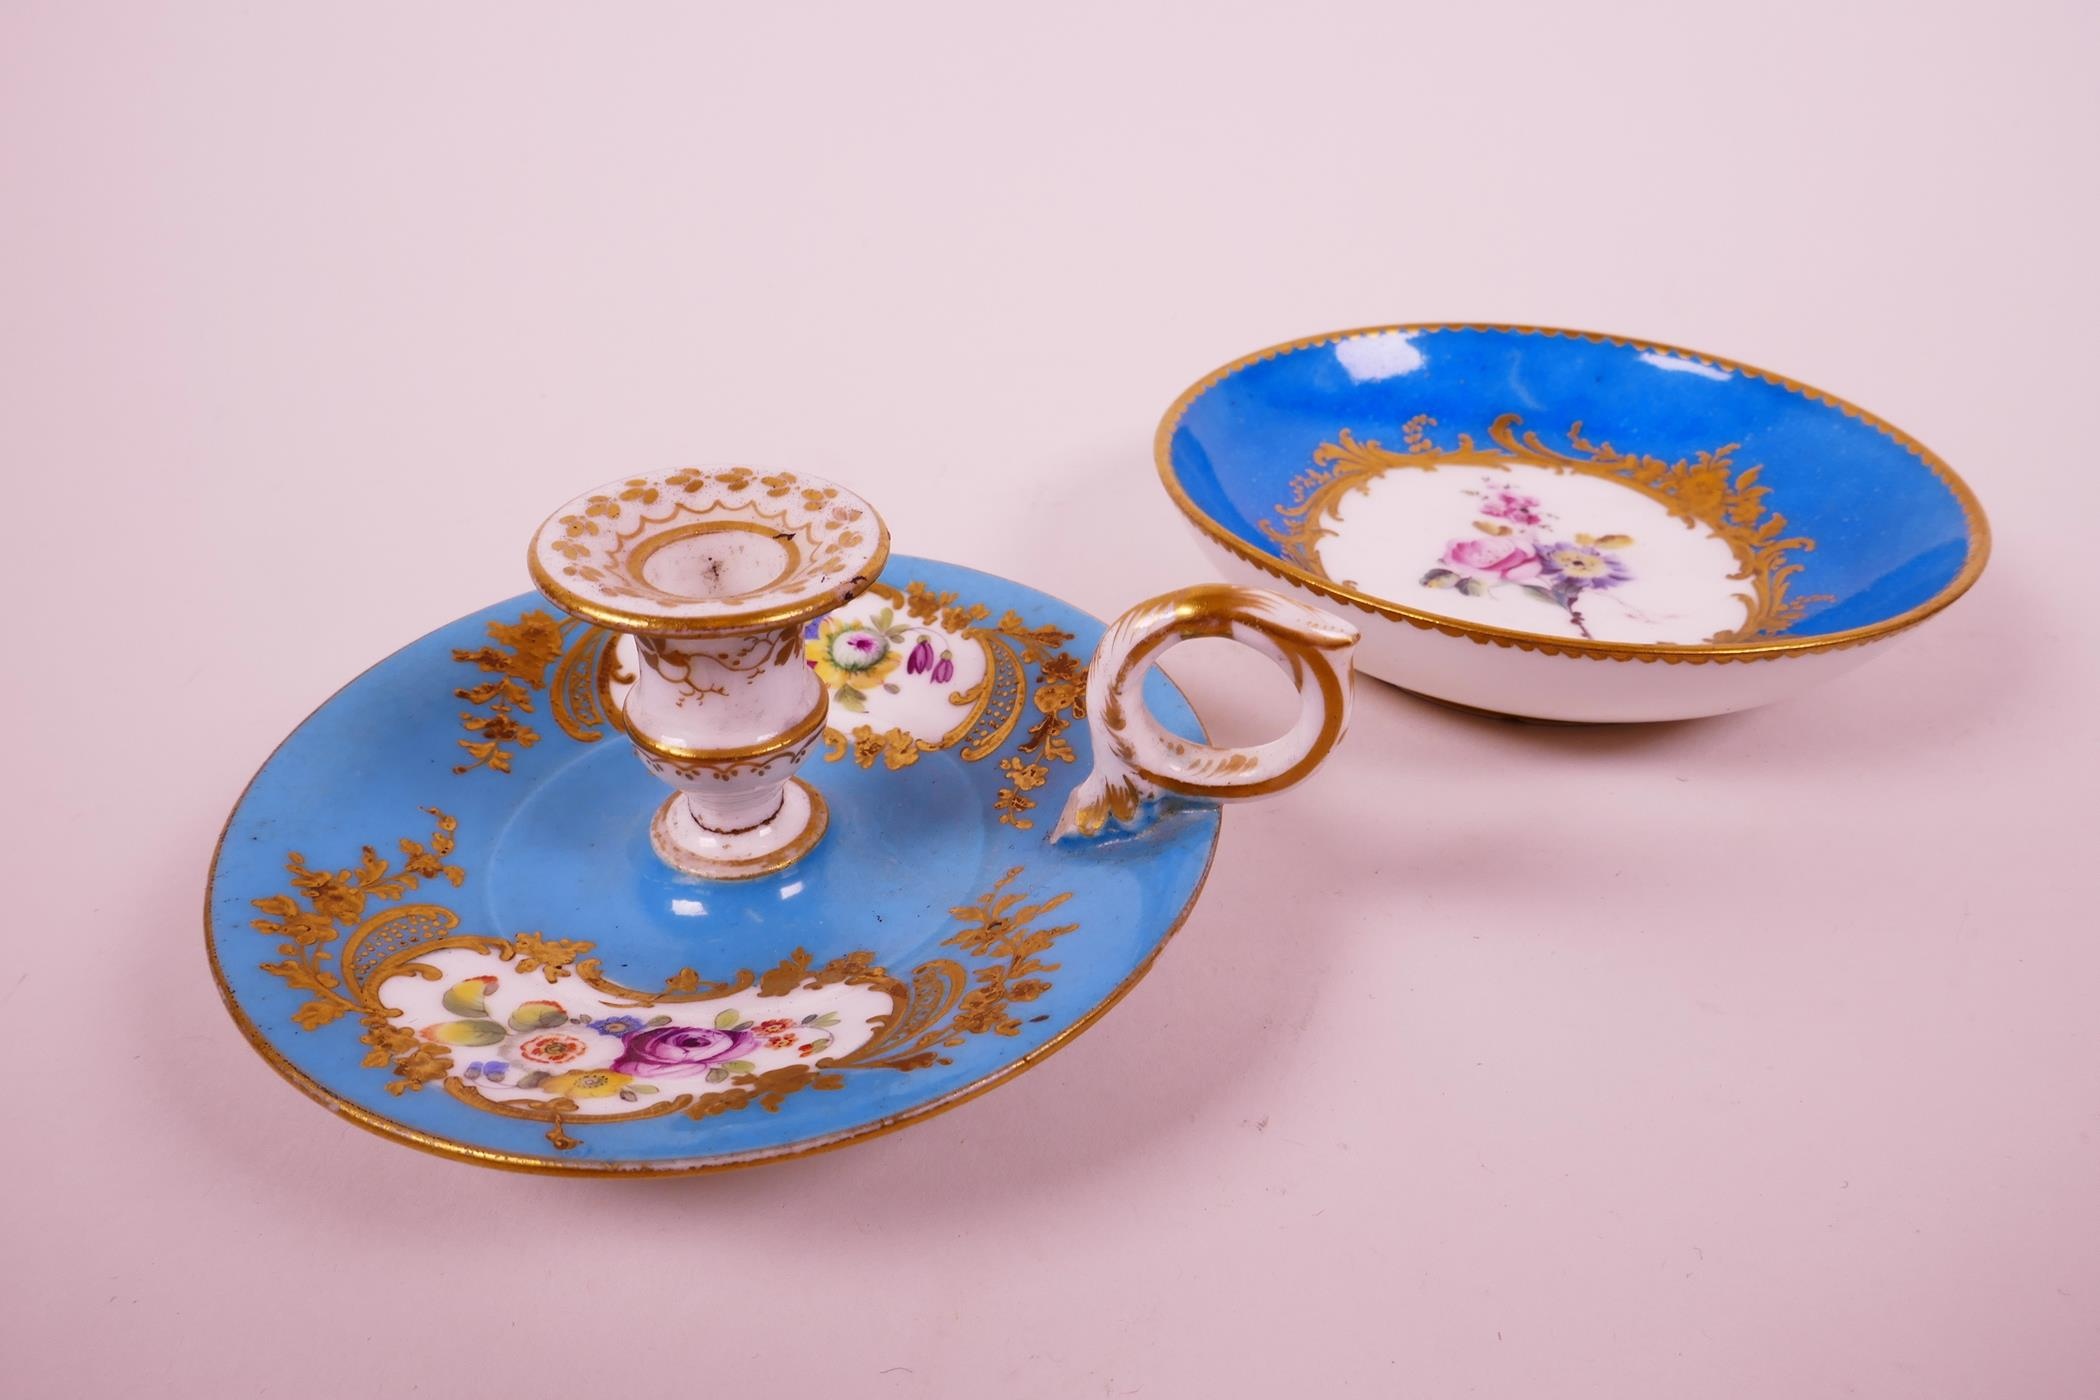 Lot 22 - A C18th Sevres bleu celeste (turquoise blue) ground chamberstick, hand painted with polychrome